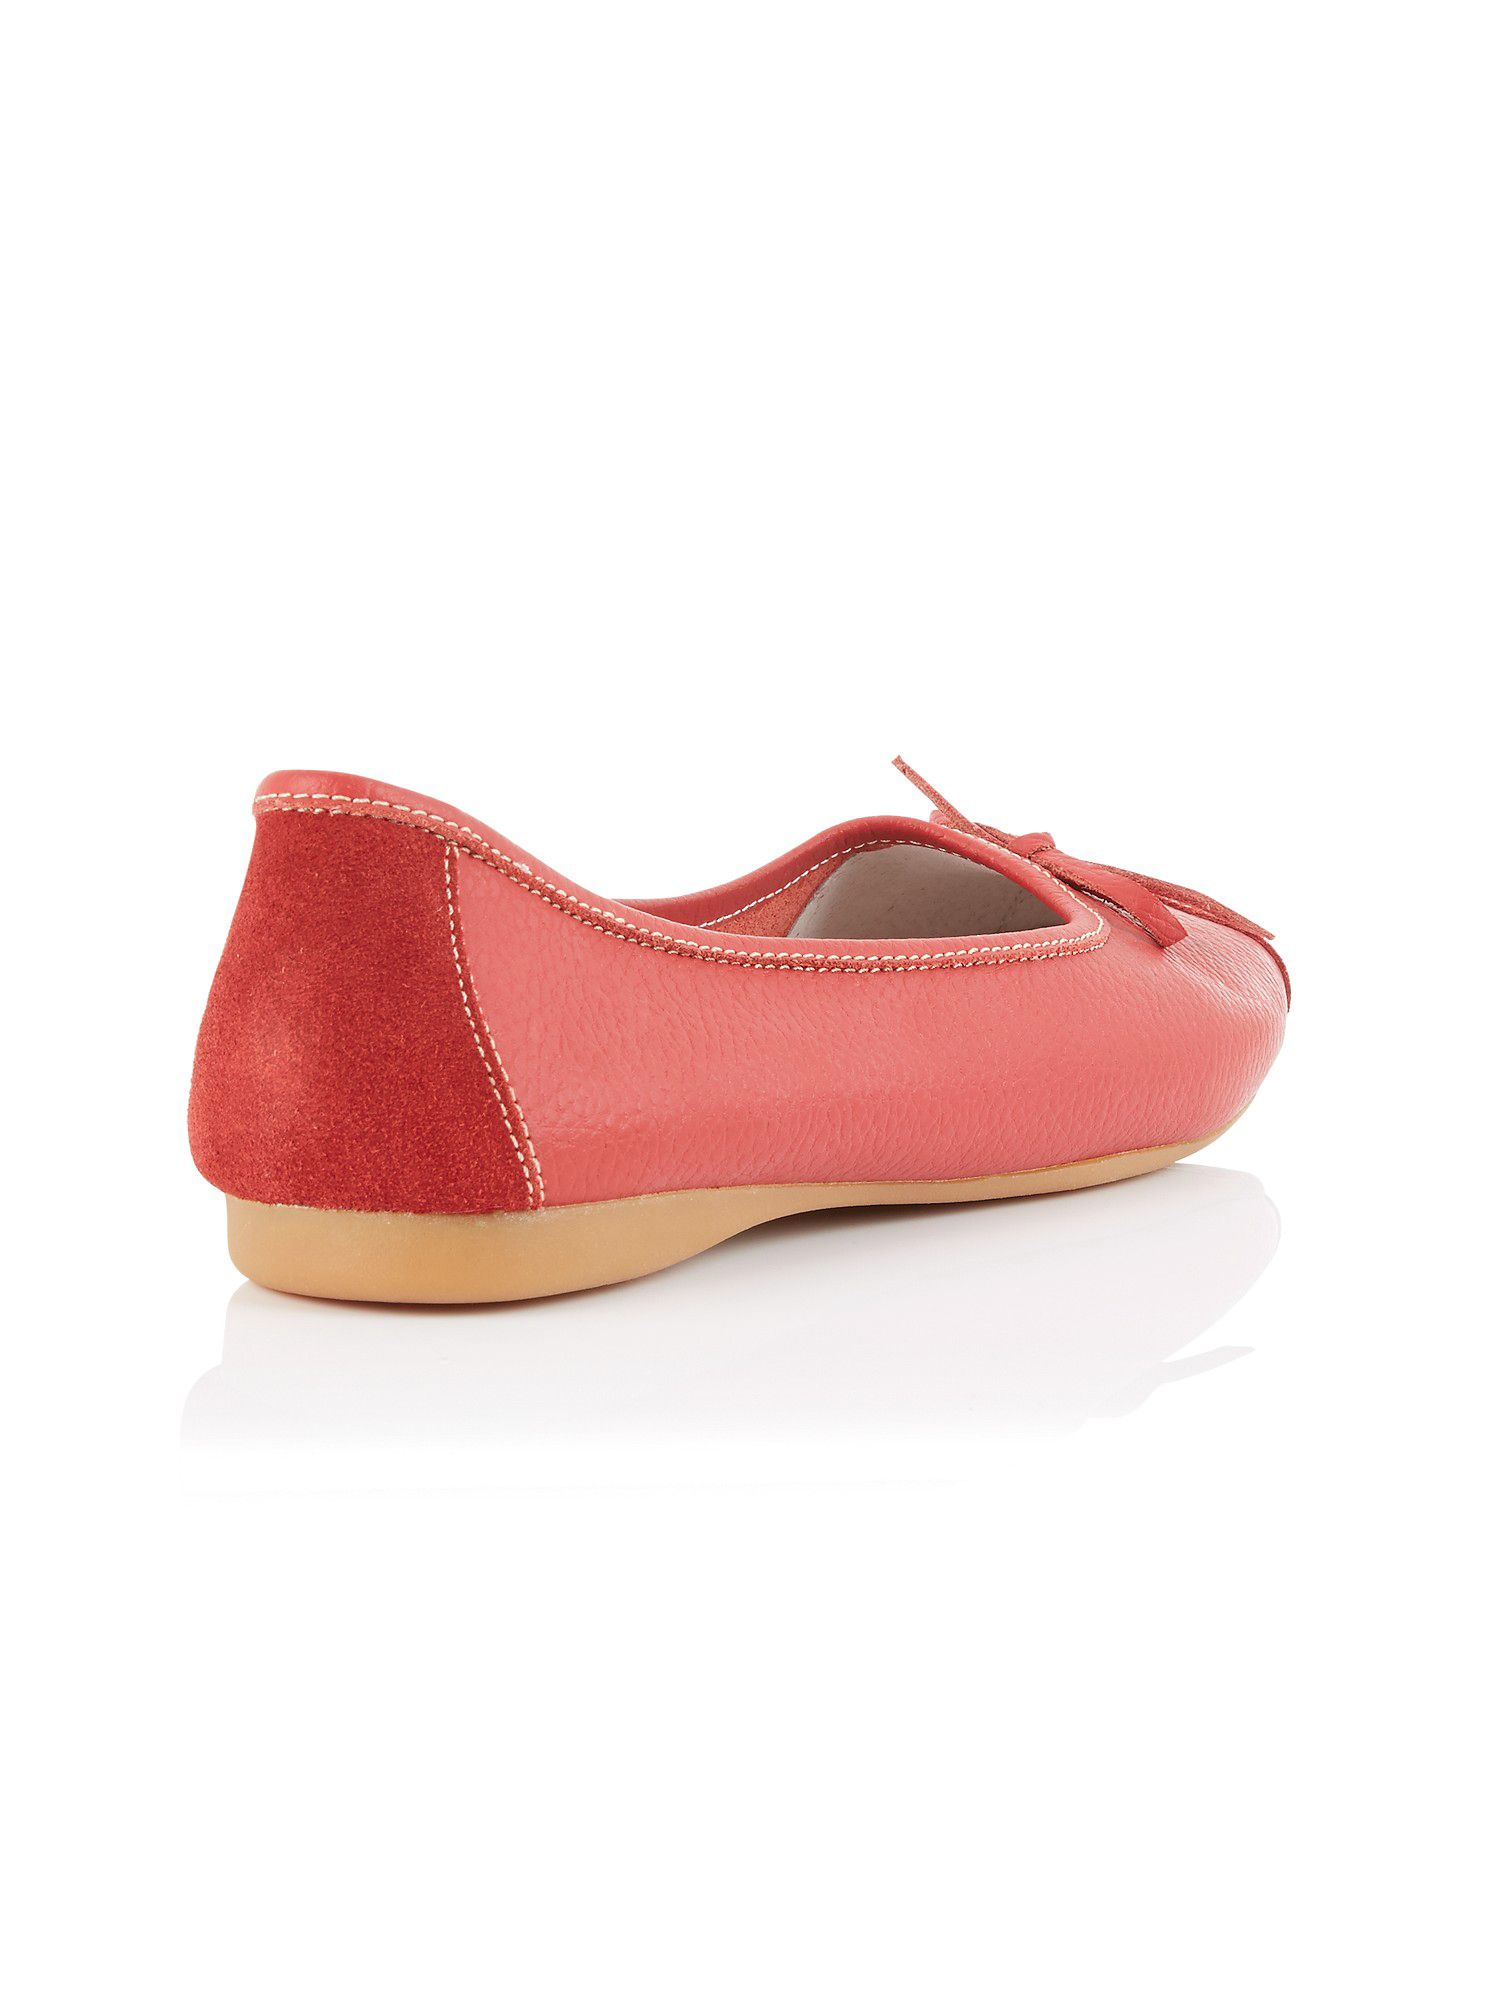 Red ballet pumps